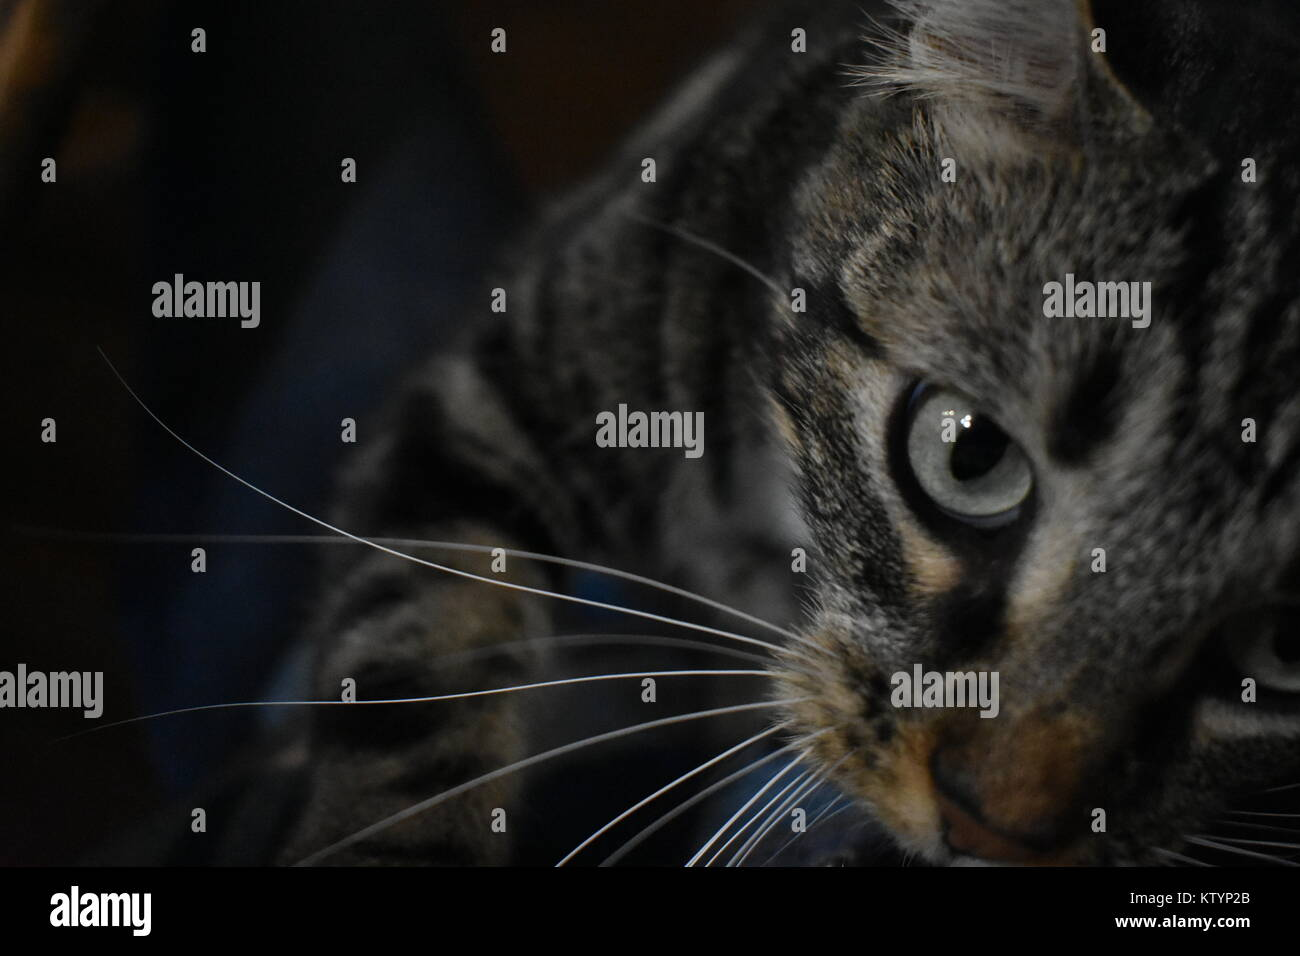 Cute tabby cat with green eyes and long whiskers - Stock Image